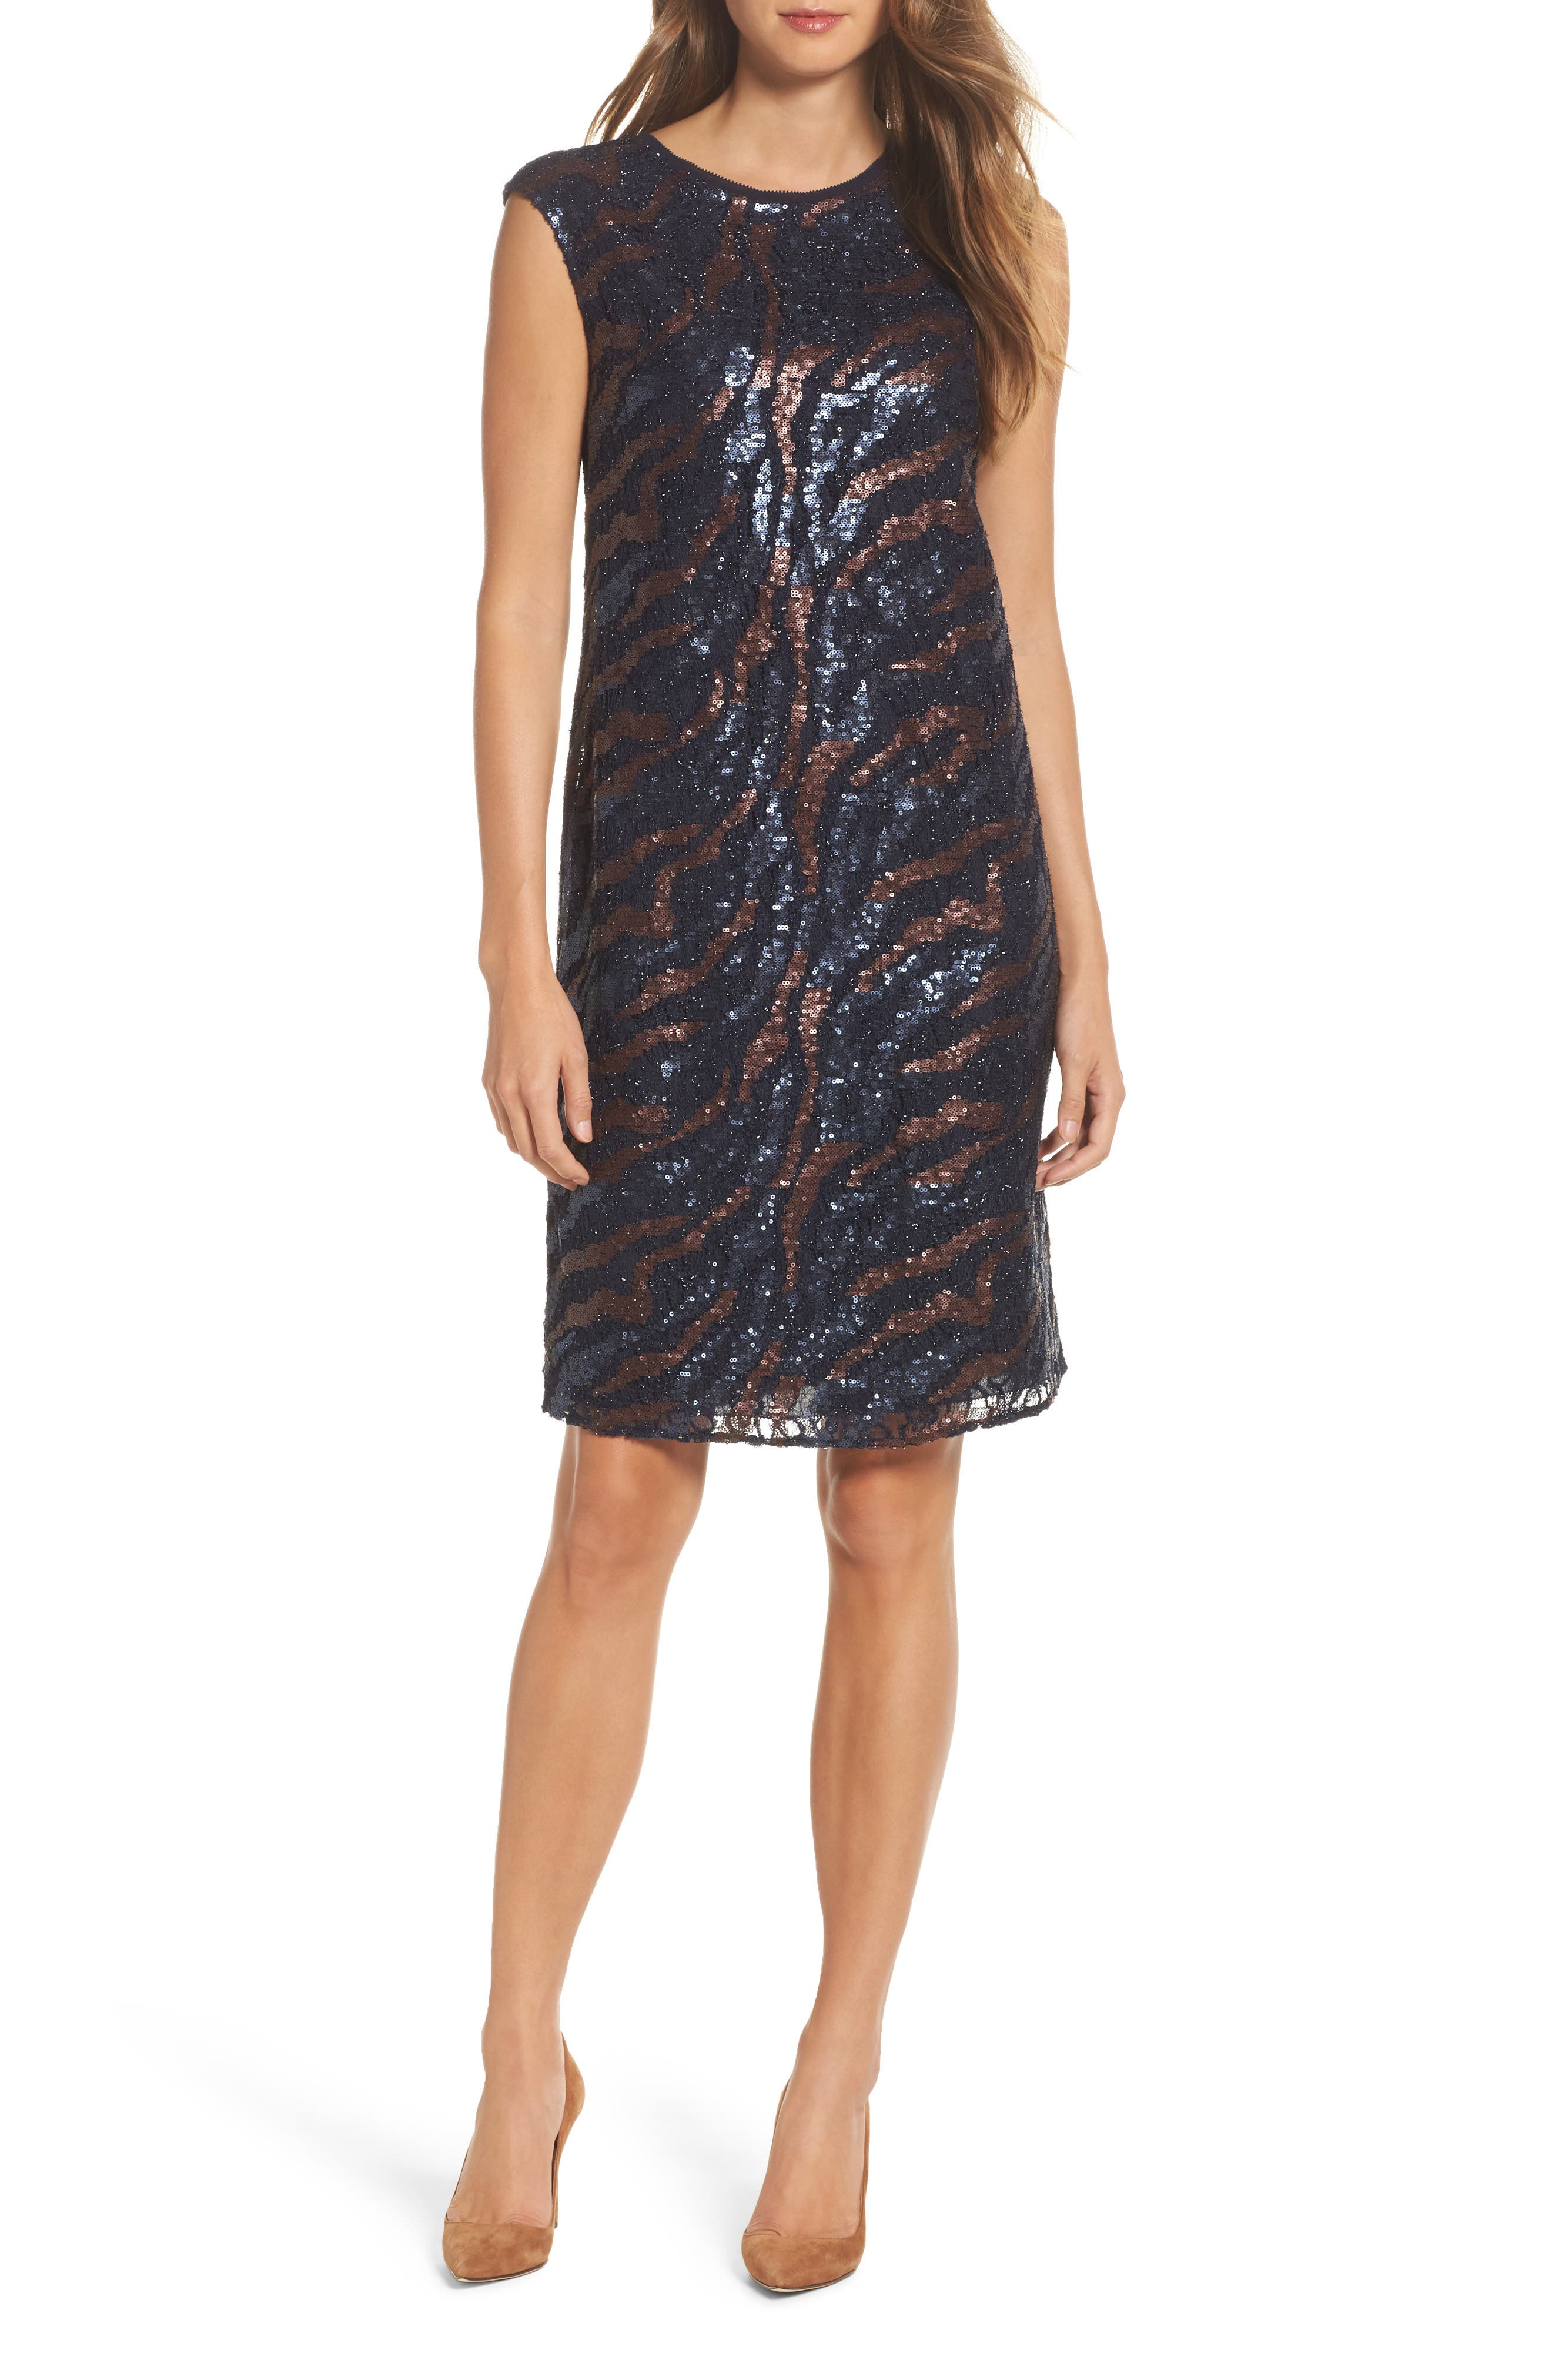 NIC + Zoe Sequin Lace Shift Dress,                         Main,                         color, Multi